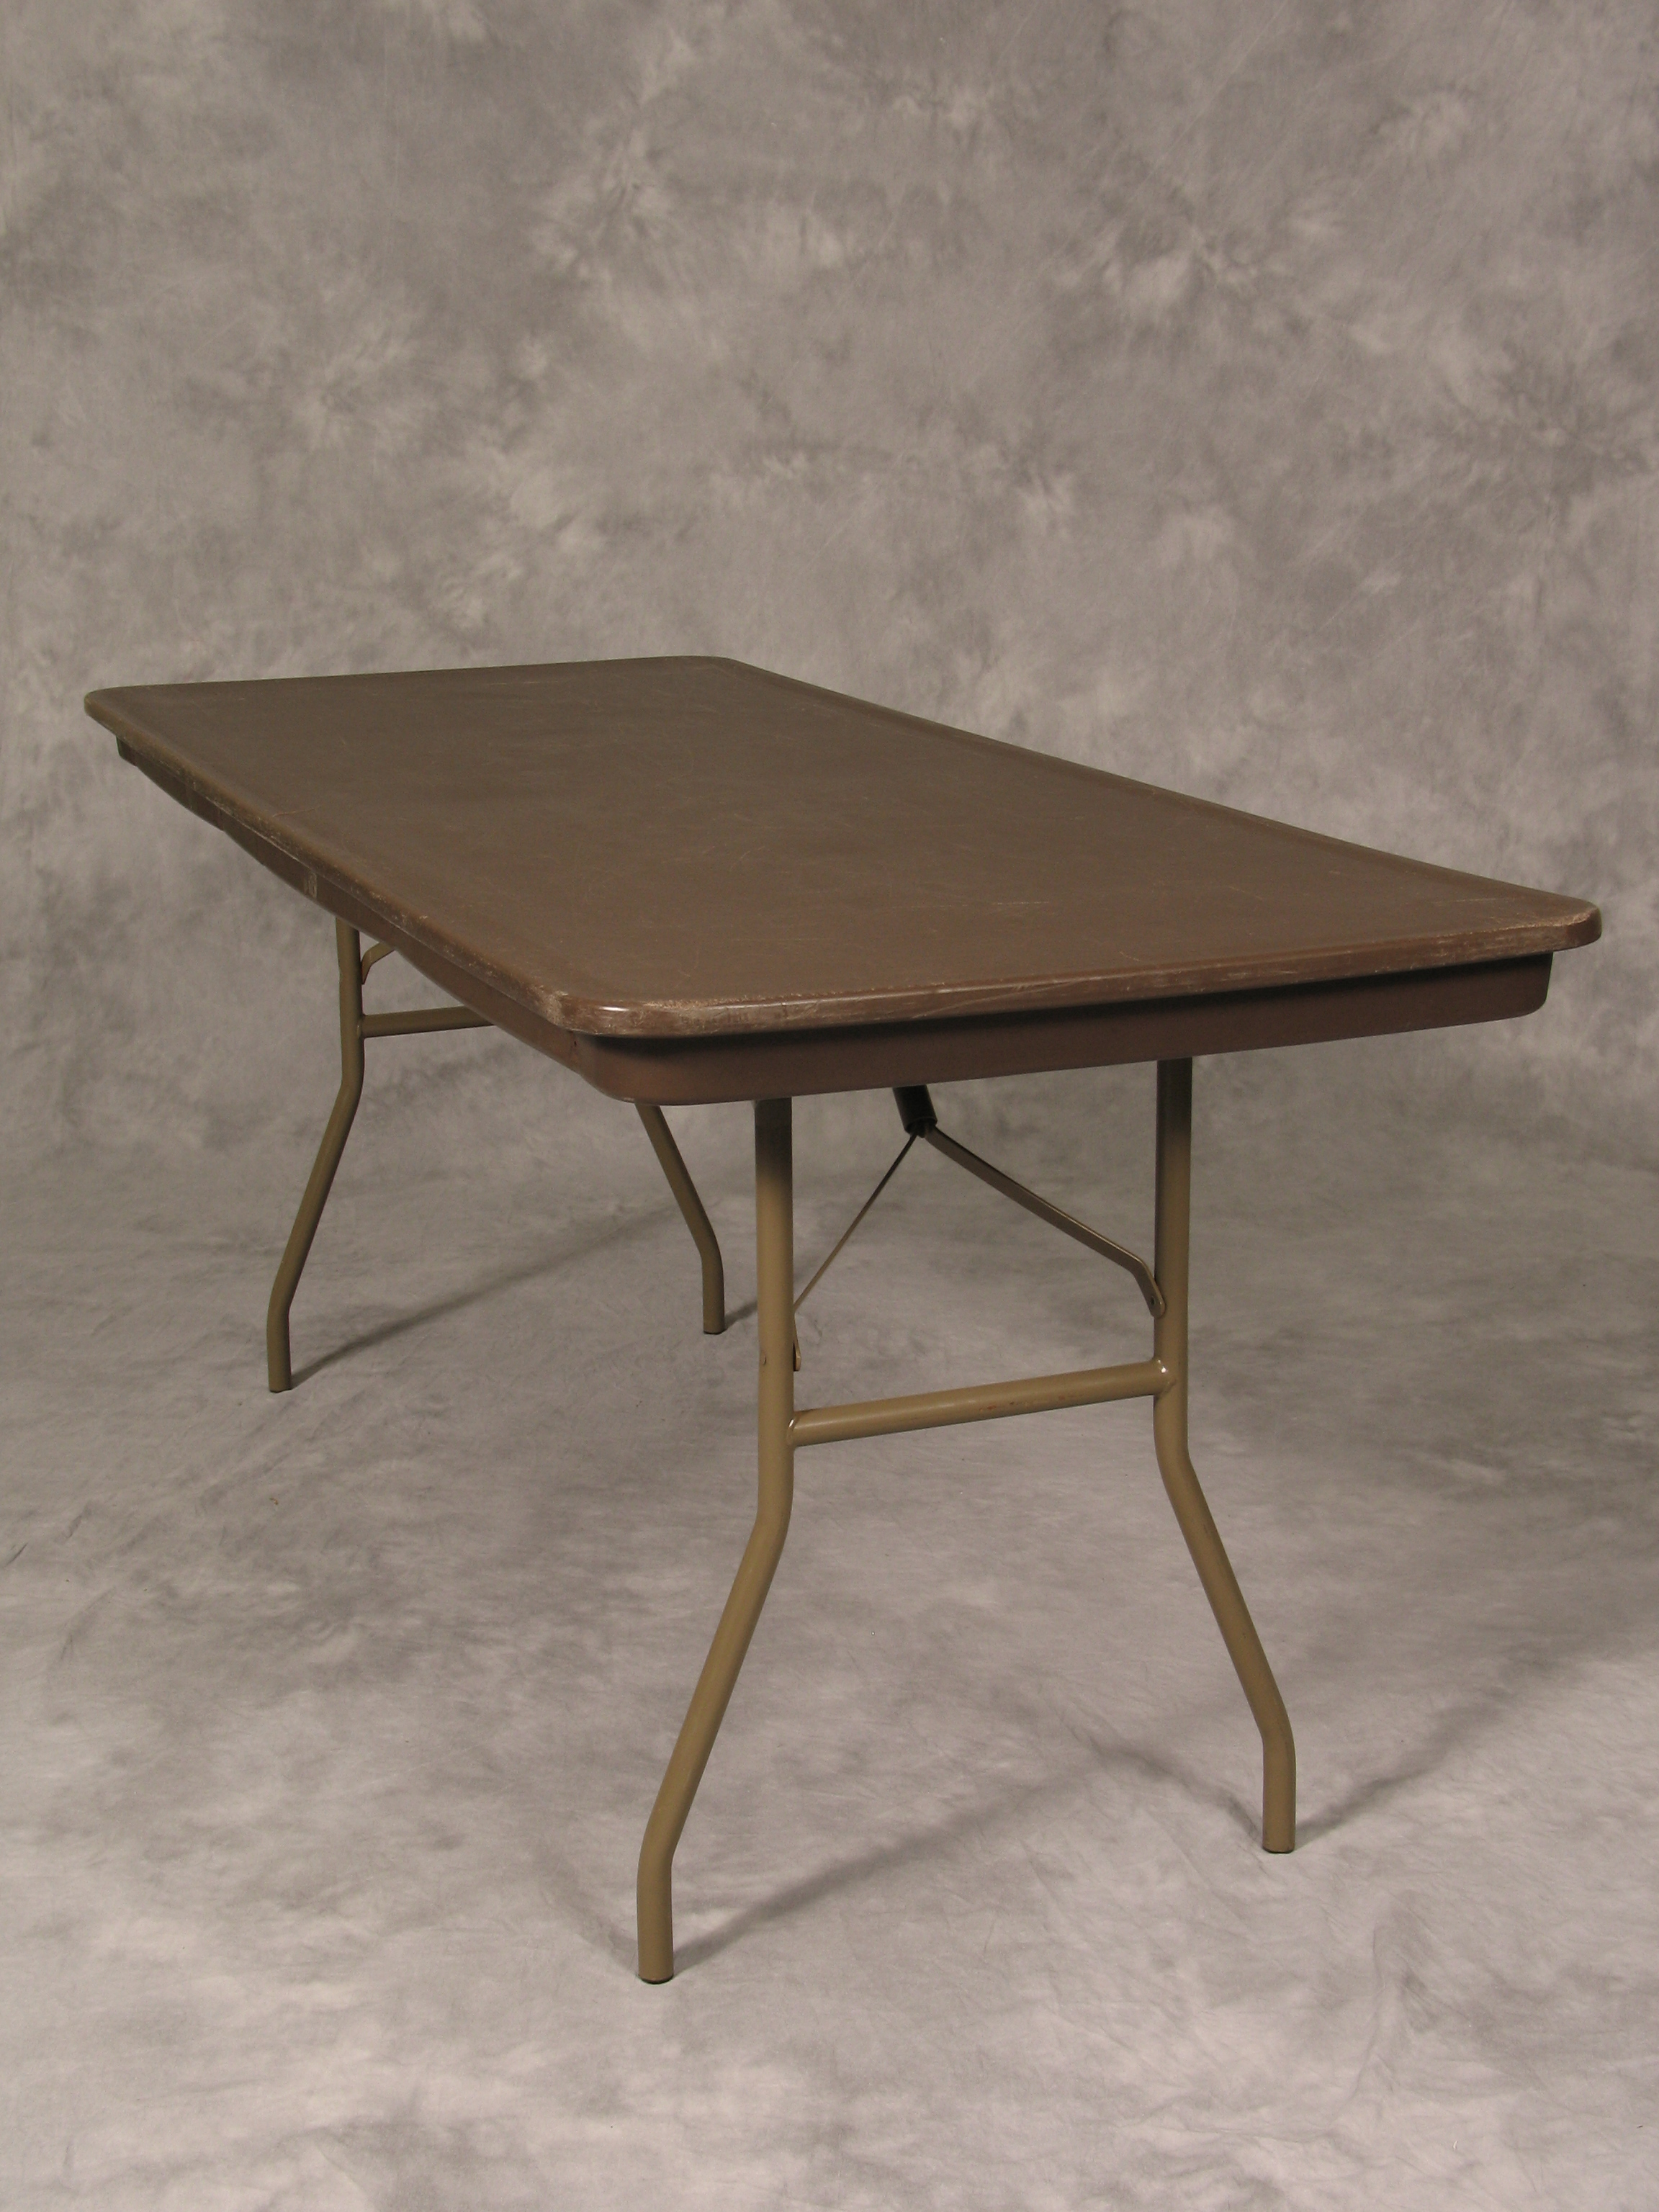 8′ Banquet Table $9